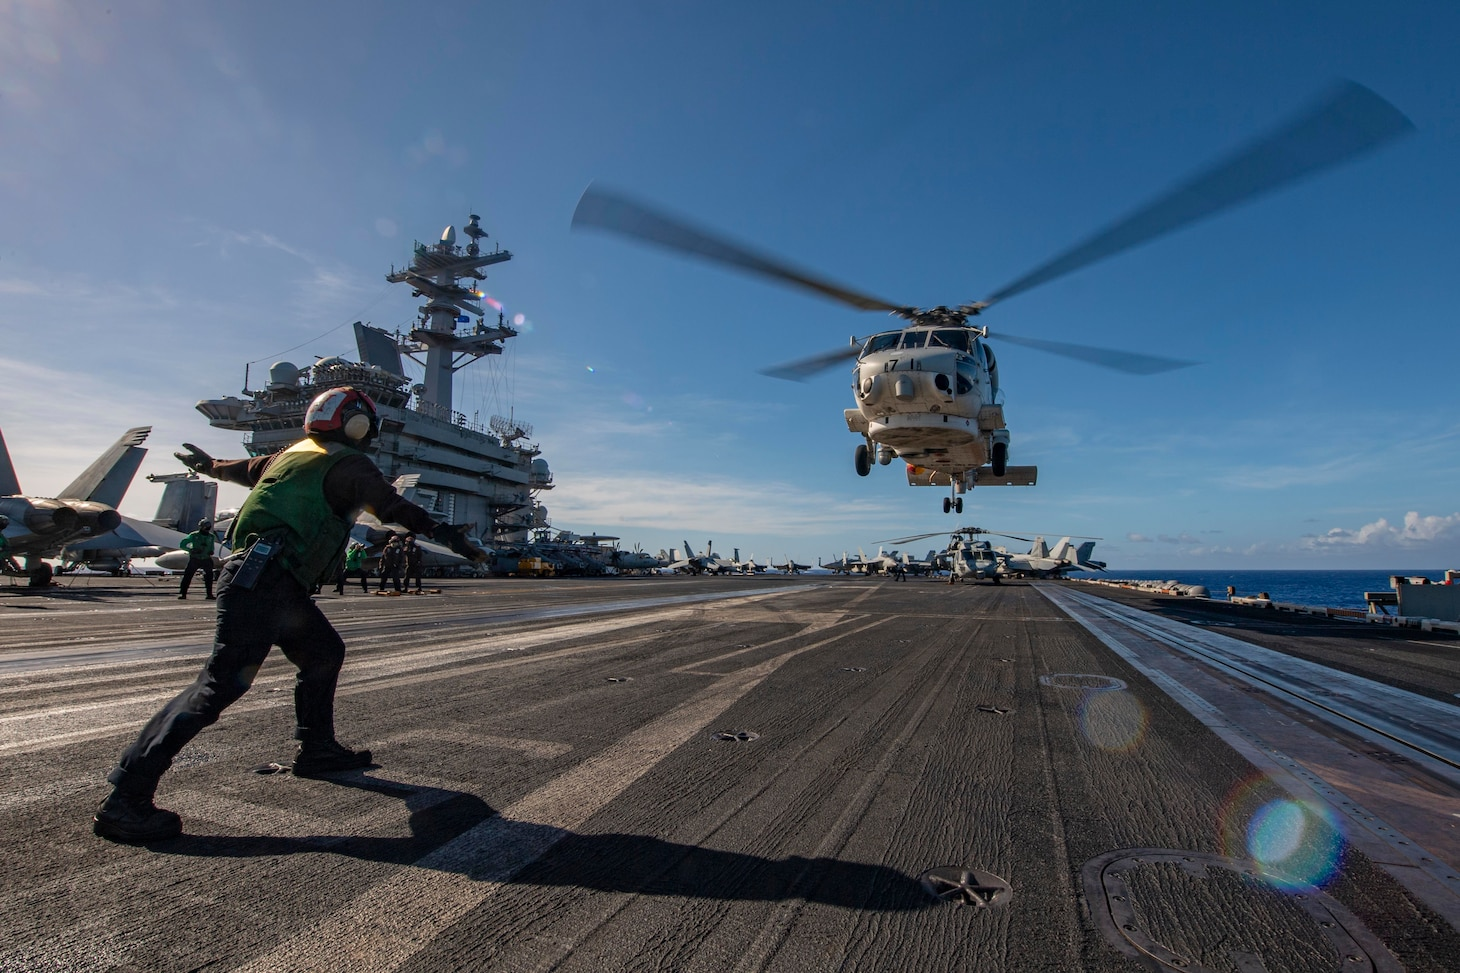 PACIFIC OCEAN (Feb 28, 2021) – U.S. Navy Airman Alexis Neff, from Jacksonville, Fla., directs the pilot of a Japan Maritime Self-Defense Force (JMSDF) MH-60 Sea Hawk to take off from the flight deck of the aircraft carrier USS Theodore Roosevelt (CVN 71) Feb. 28, 2021. The Theodore Roosevelt Carrier Strike Group is on a scheduled deployment to the U.S. 7th Fleet area of operations. As the U.S. Navy's largest forward-deployed fleet, 7th Fleet routinely operates and interacts with 35 maritime nations while conducting missions to preserve and protect a free and open Indo-Pacific Region. (U.S. Navy photo by Mass Communication Specialist 3rd Class Erik Melgar)